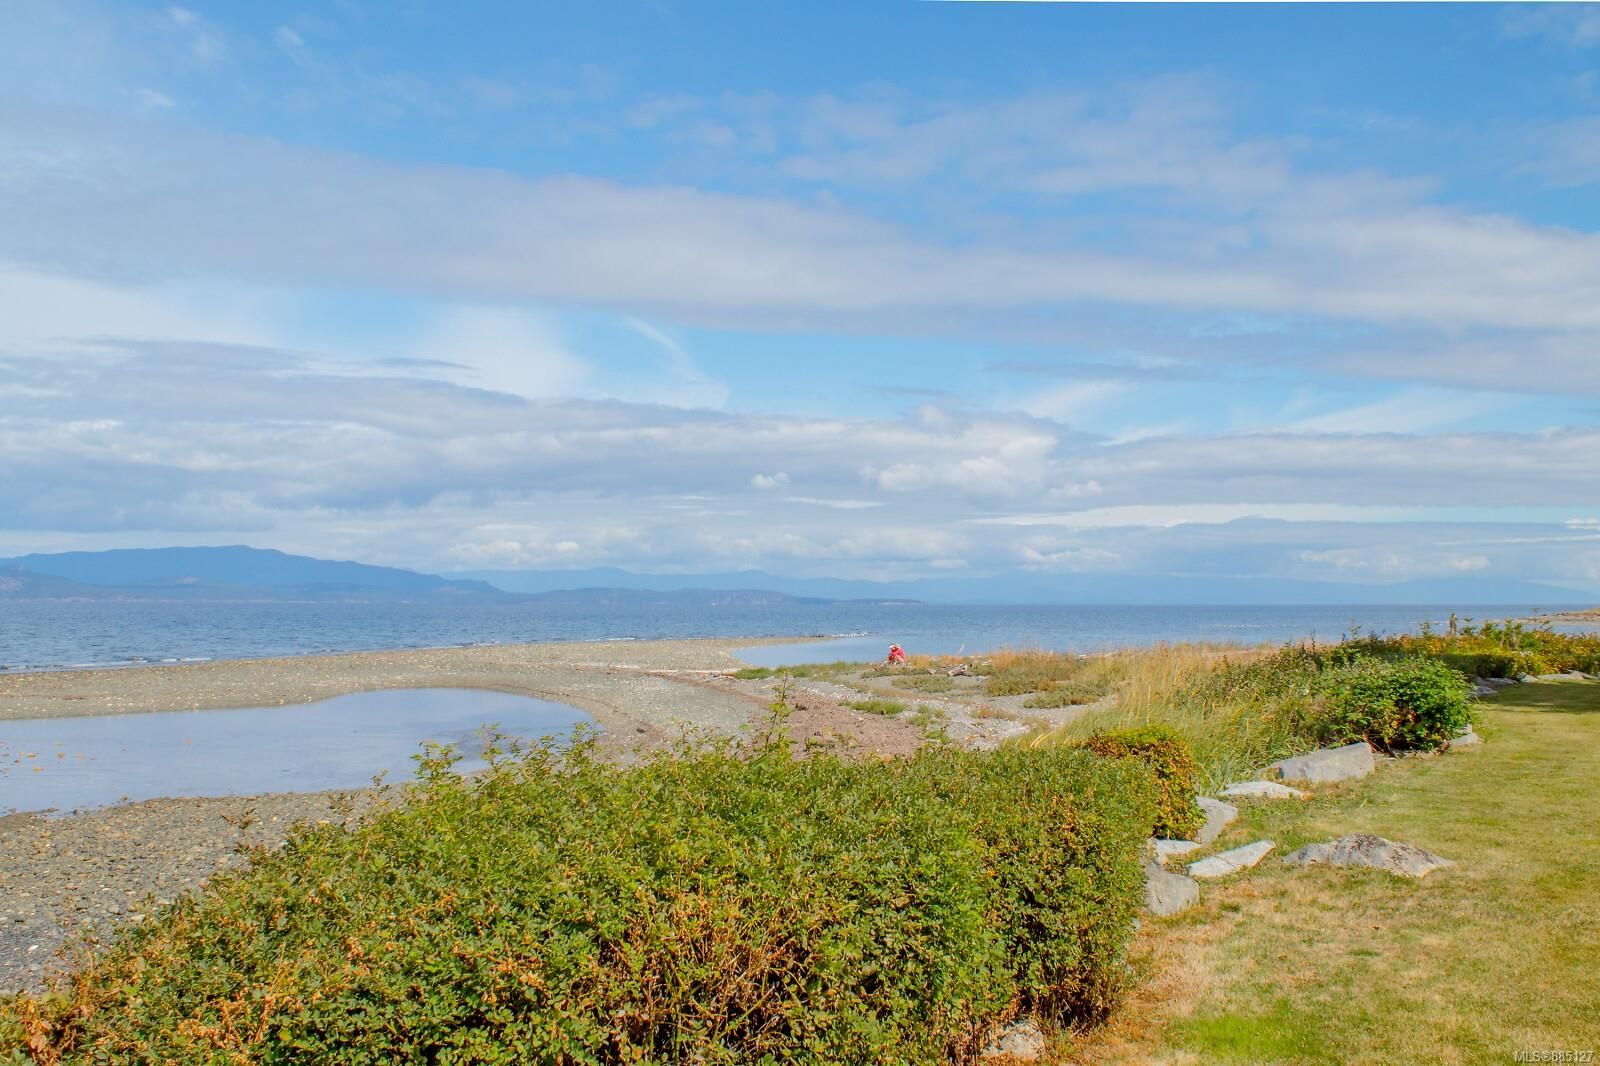 Photo 52: Photos: 26 529 Johnstone Rd in : PQ French Creek Row/Townhouse for sale (Parksville/Qualicum)  : MLS®# 885127